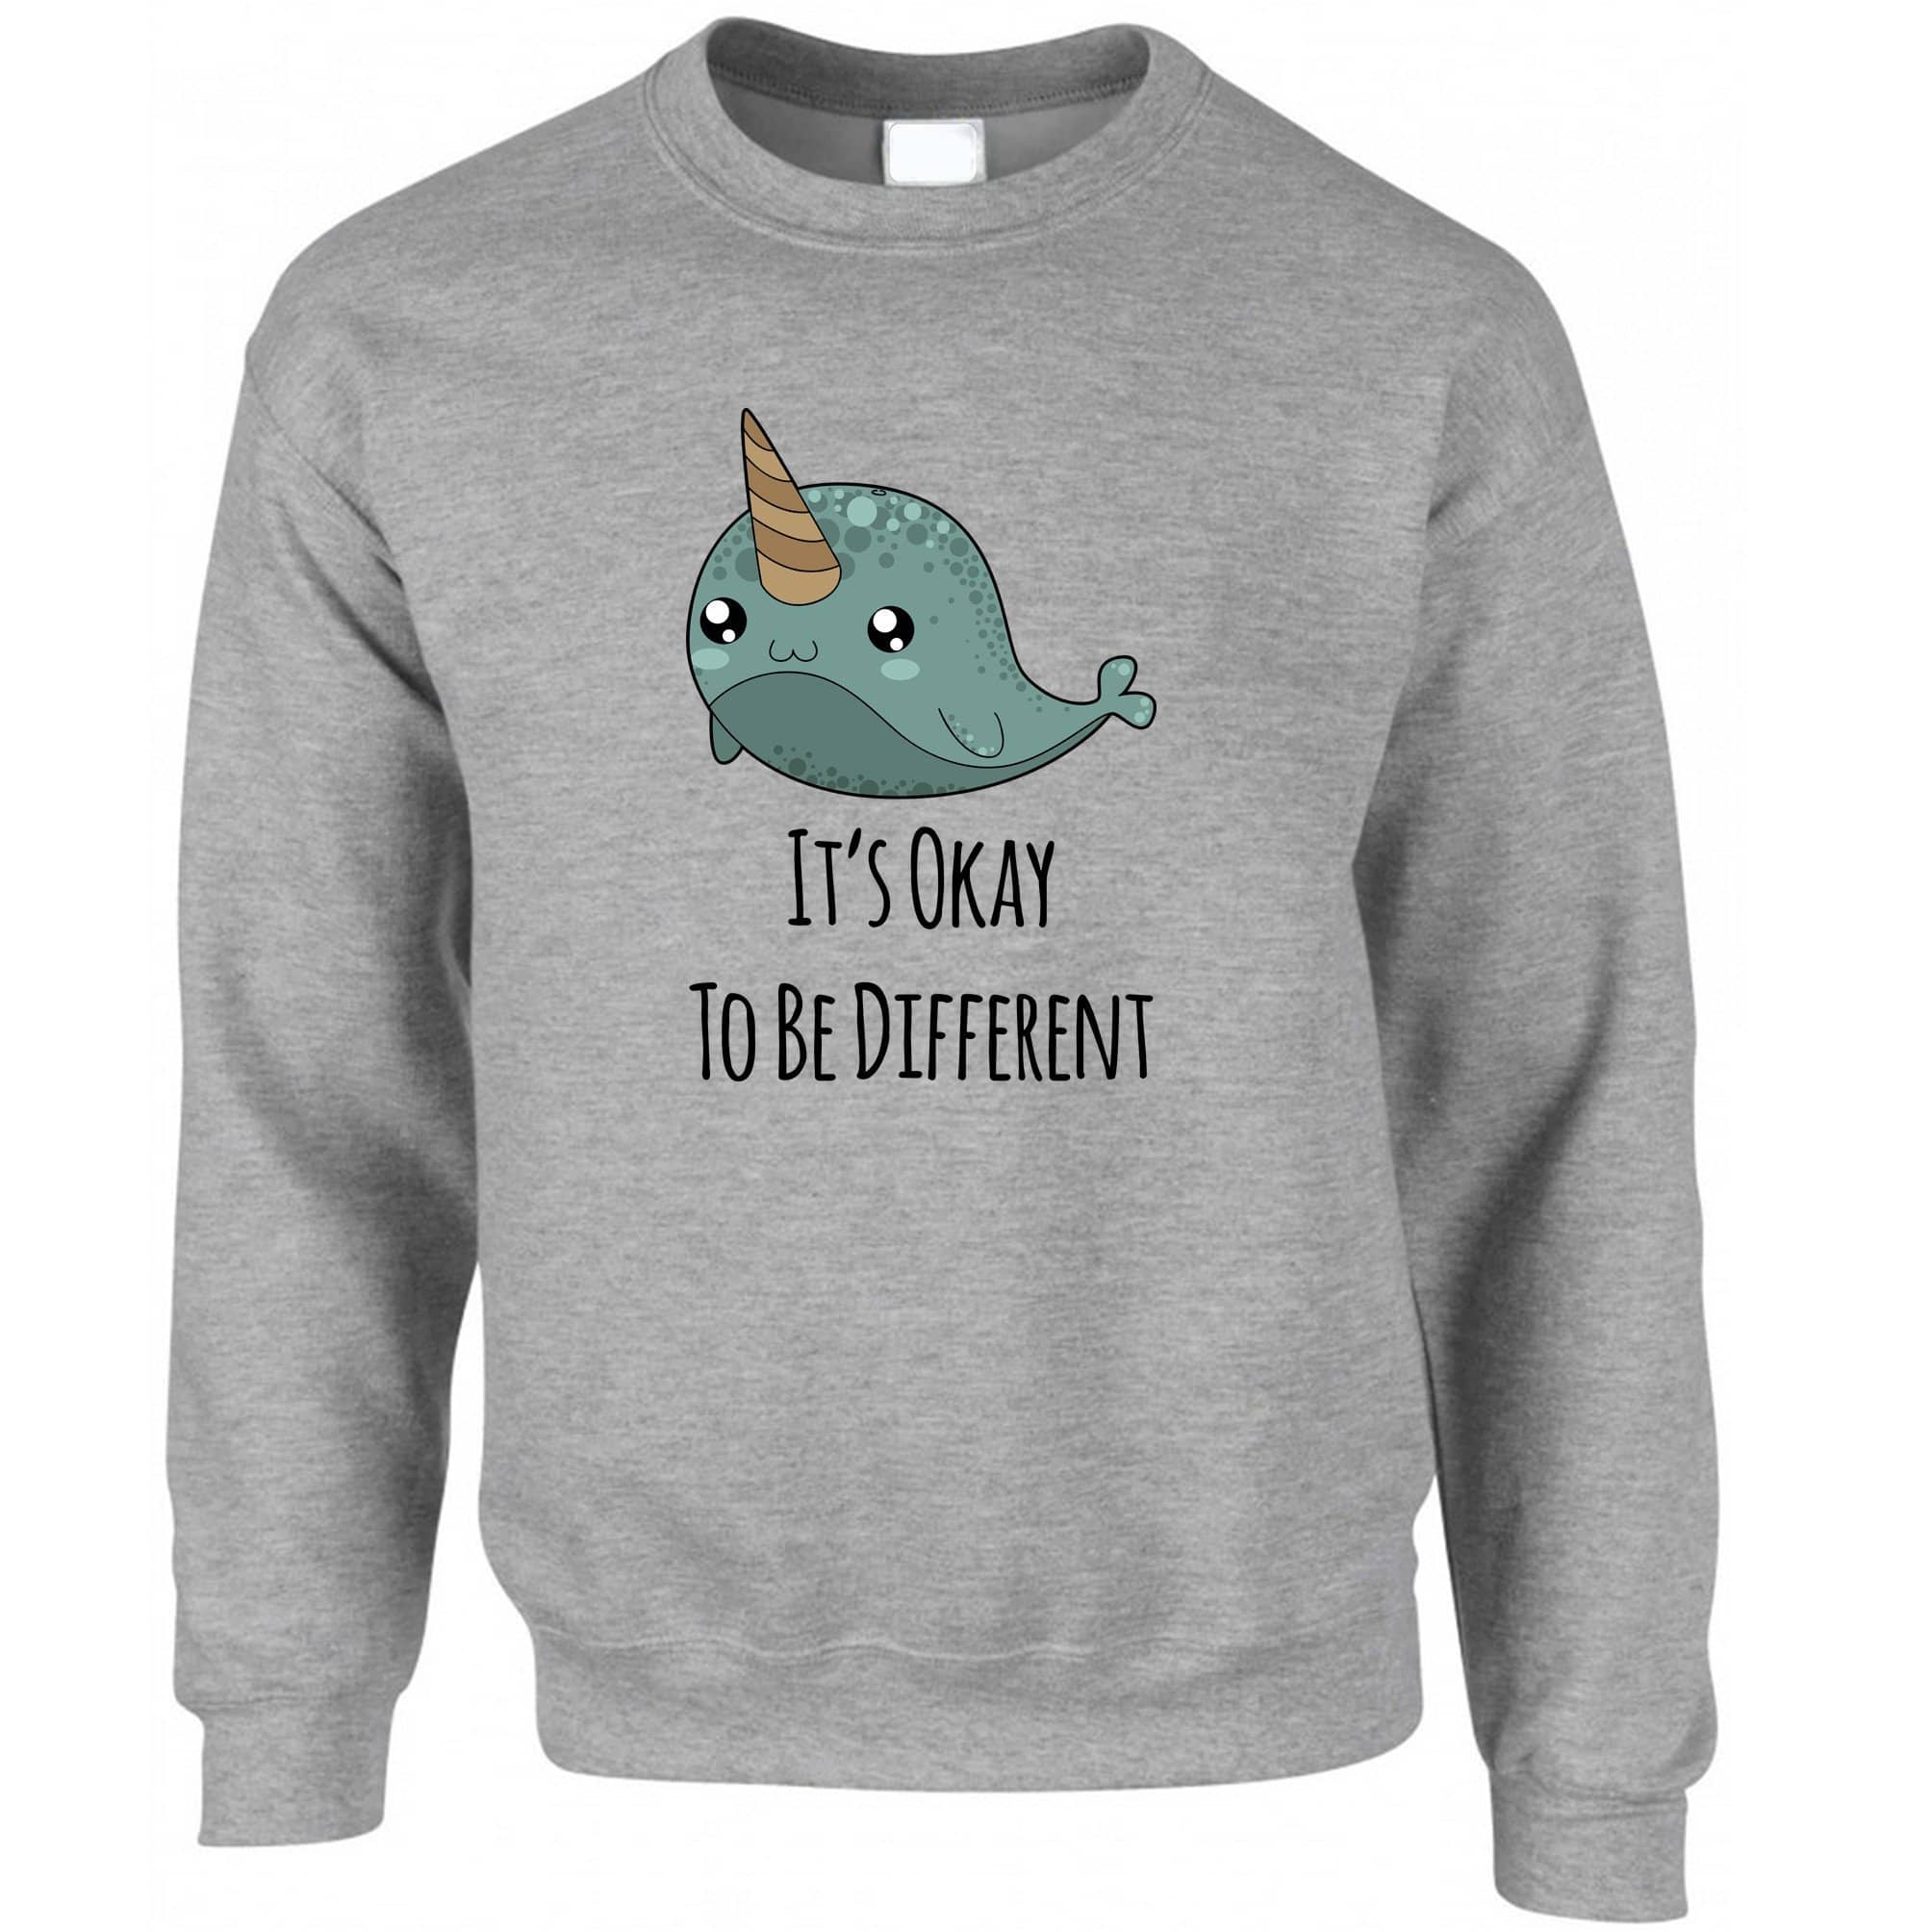 Cute Narwhal Jumper It's Okay To Be Different Slogan Sweatshirt Sweater